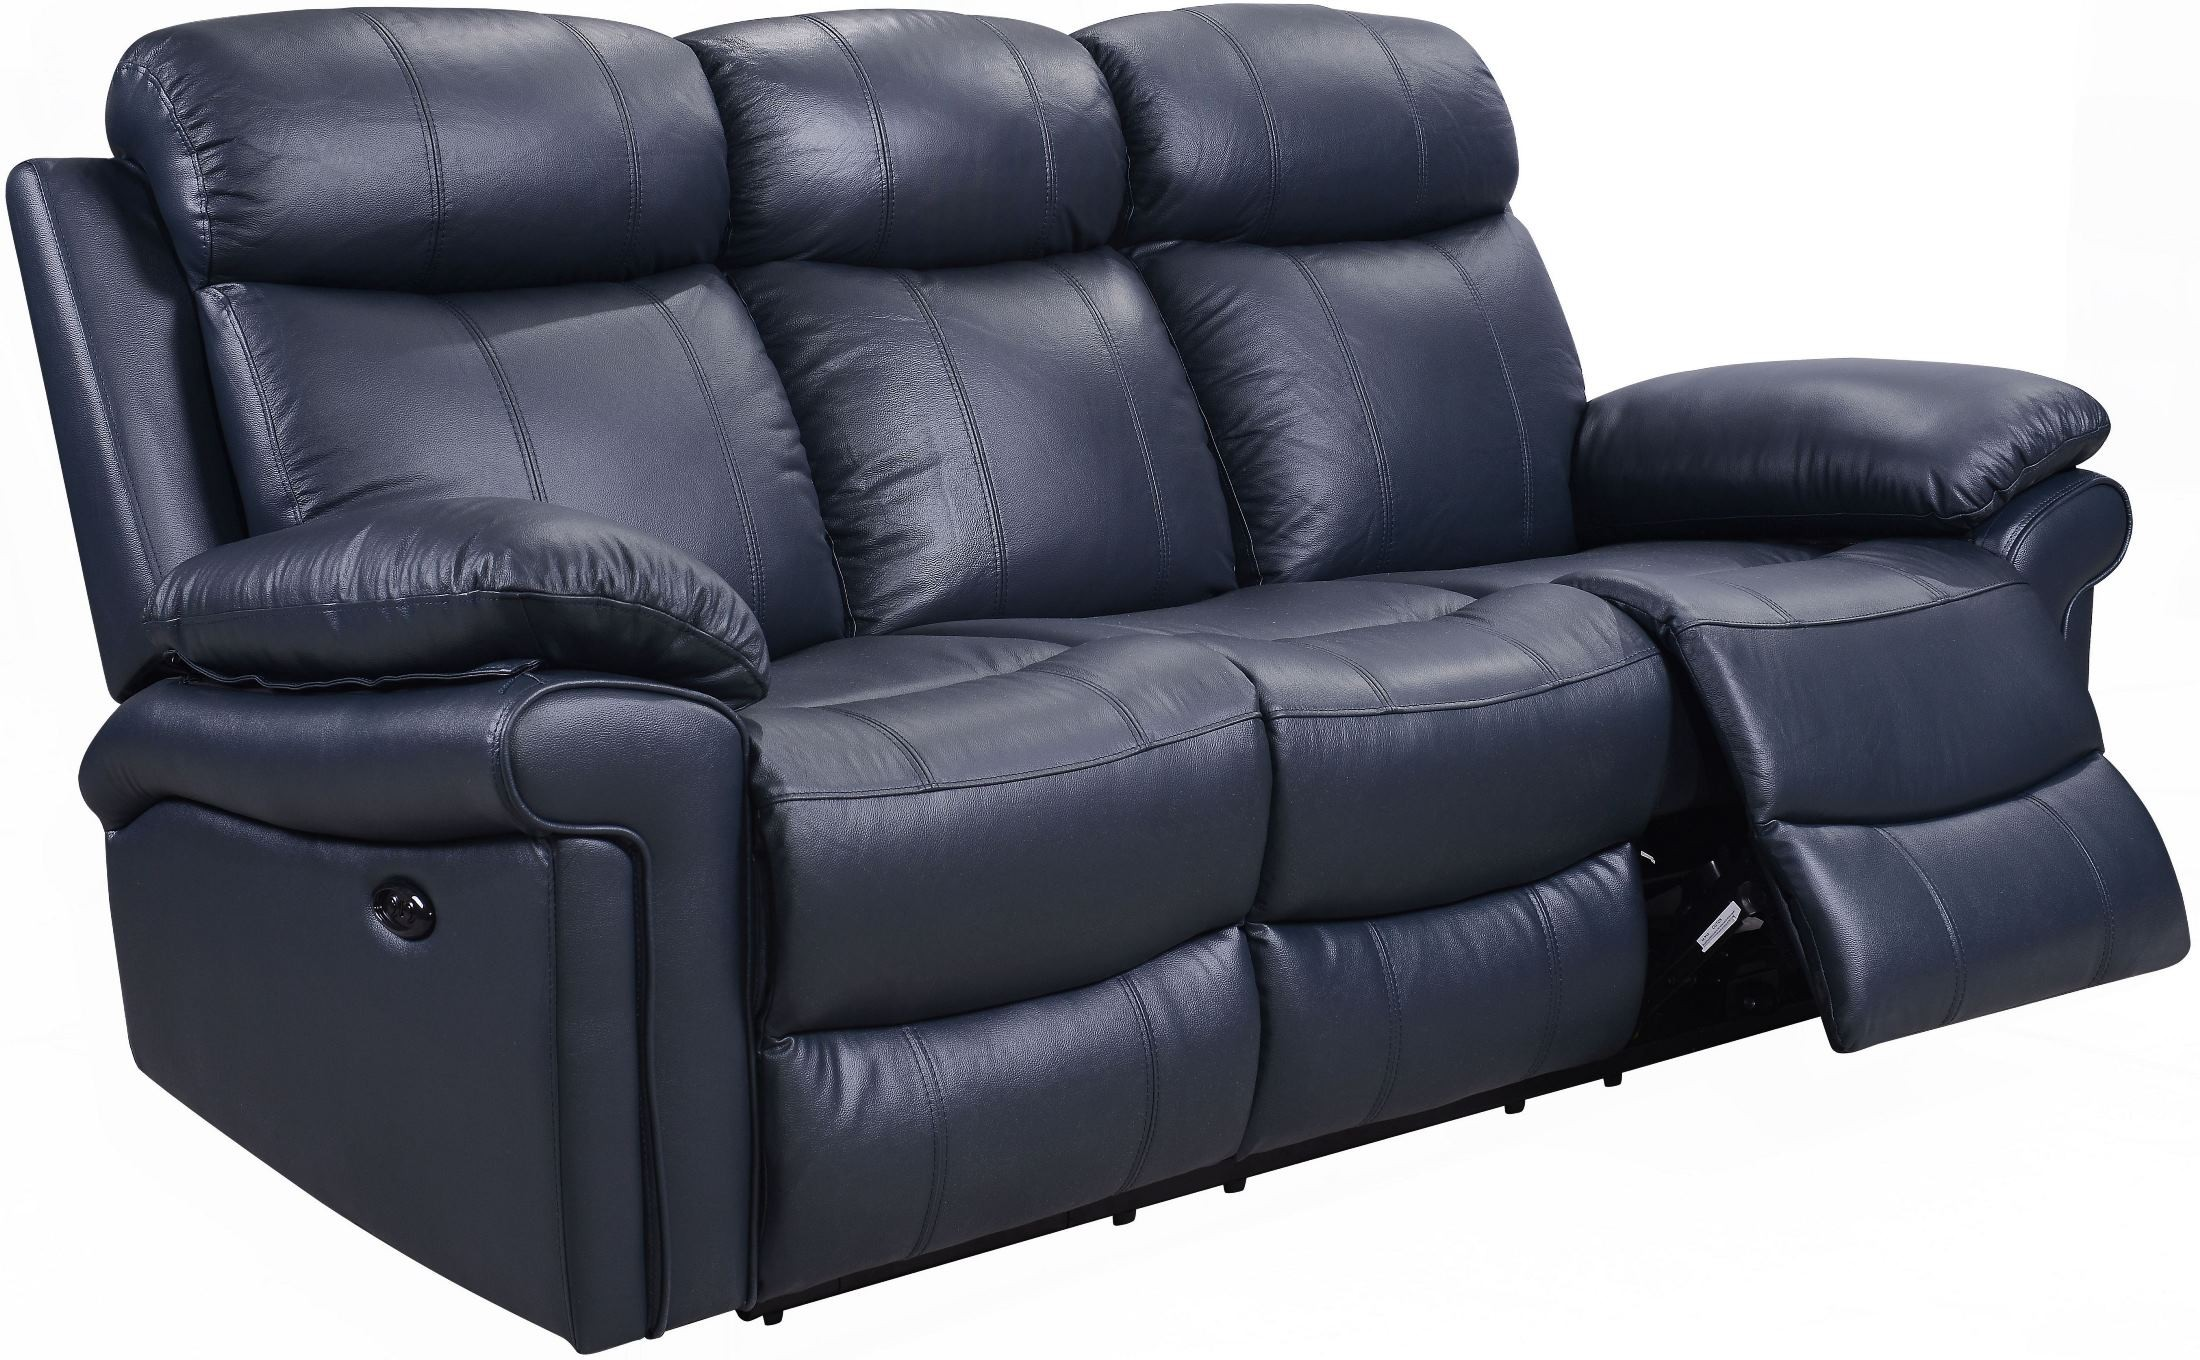 Shae Joplin Blue Leather Power Reclining Sofa from Leather